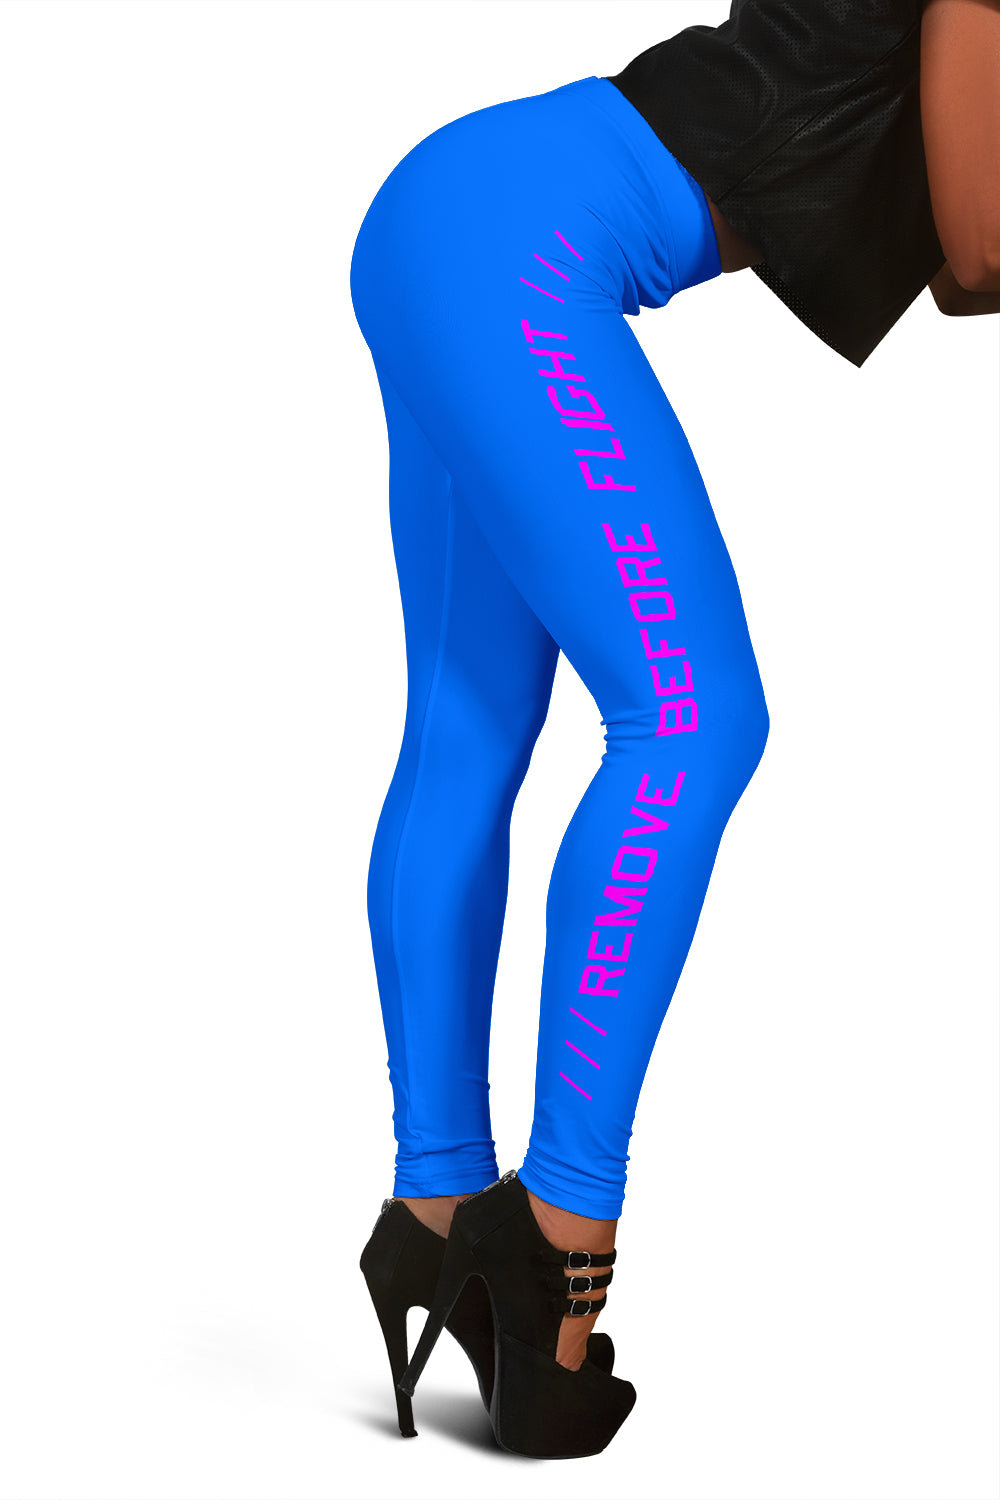 Remove Before Flight Leggings - Blue - I Love a Hangar